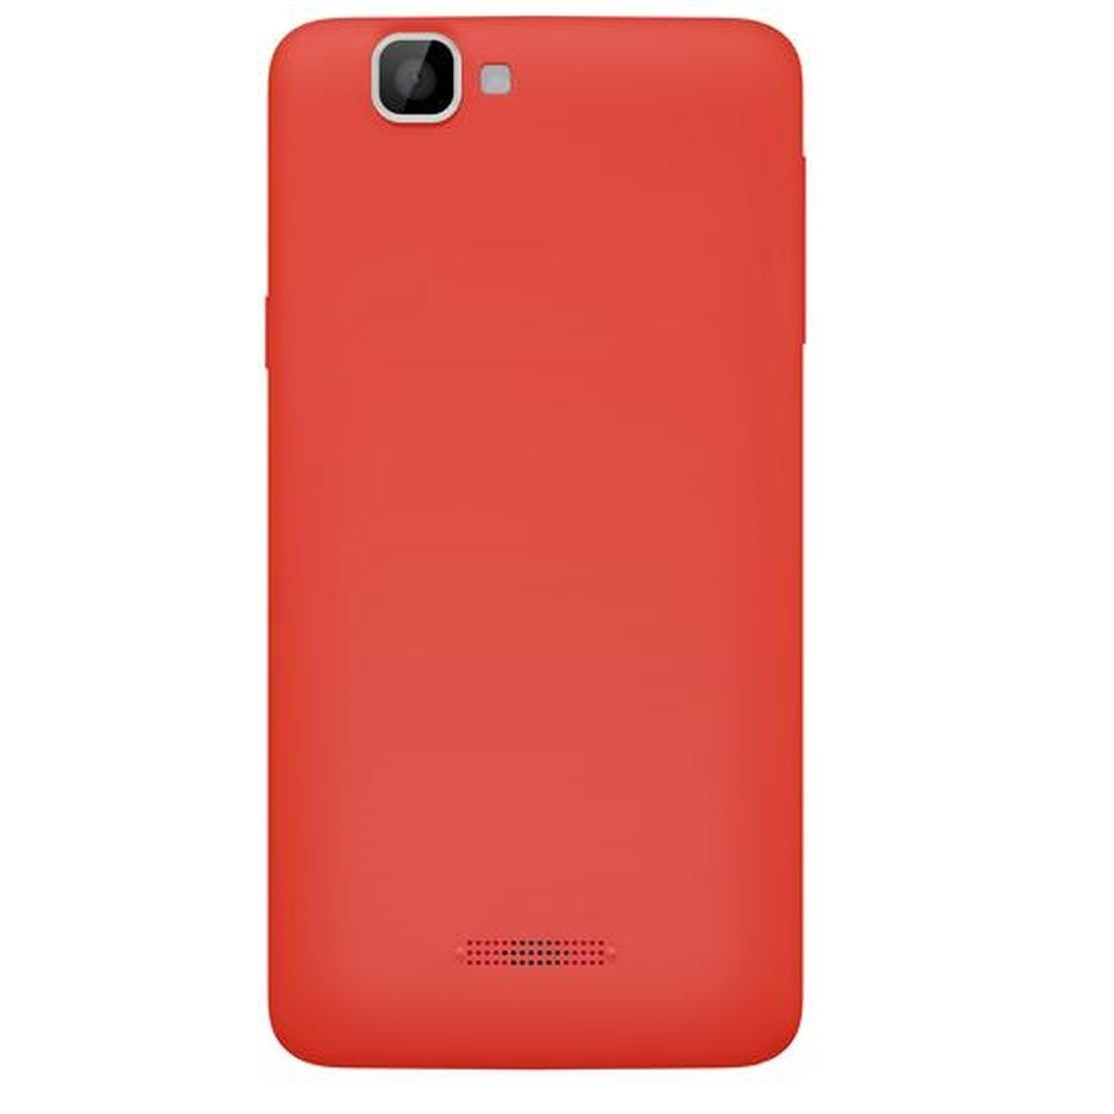 sale retailer e8a88 01e66 Back Panel Cover for Wiko Rainbow - Coral